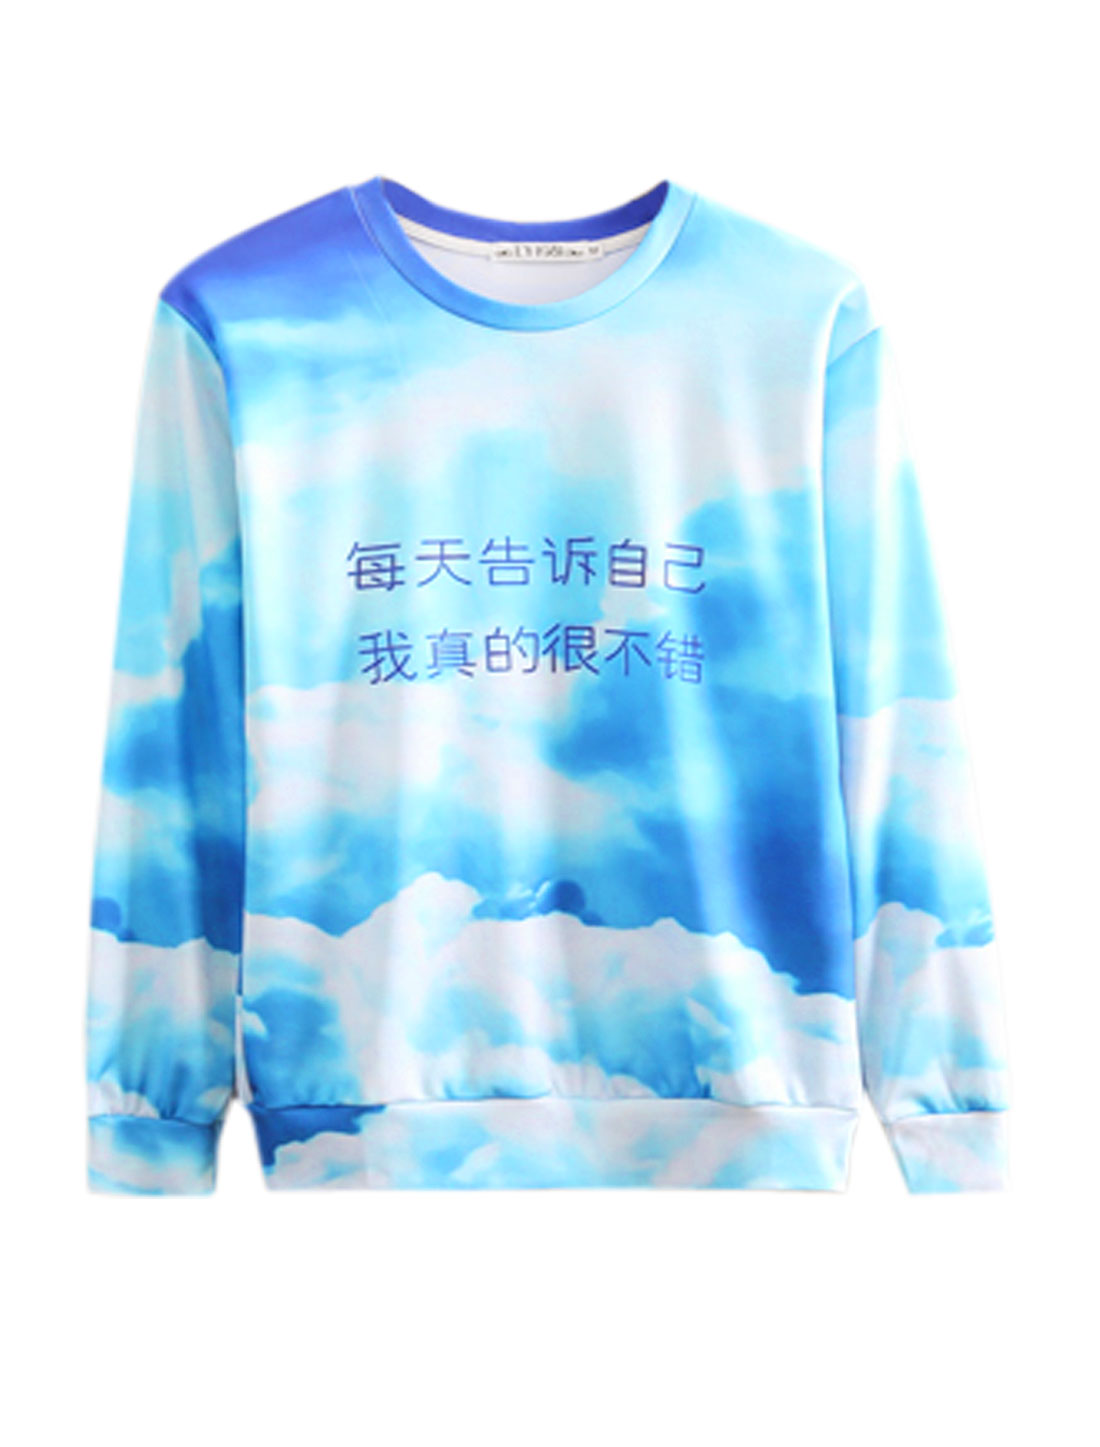 Men Sky Blue Chinese Characters Prints Long Sleeves Round Neck Sweatshirt M